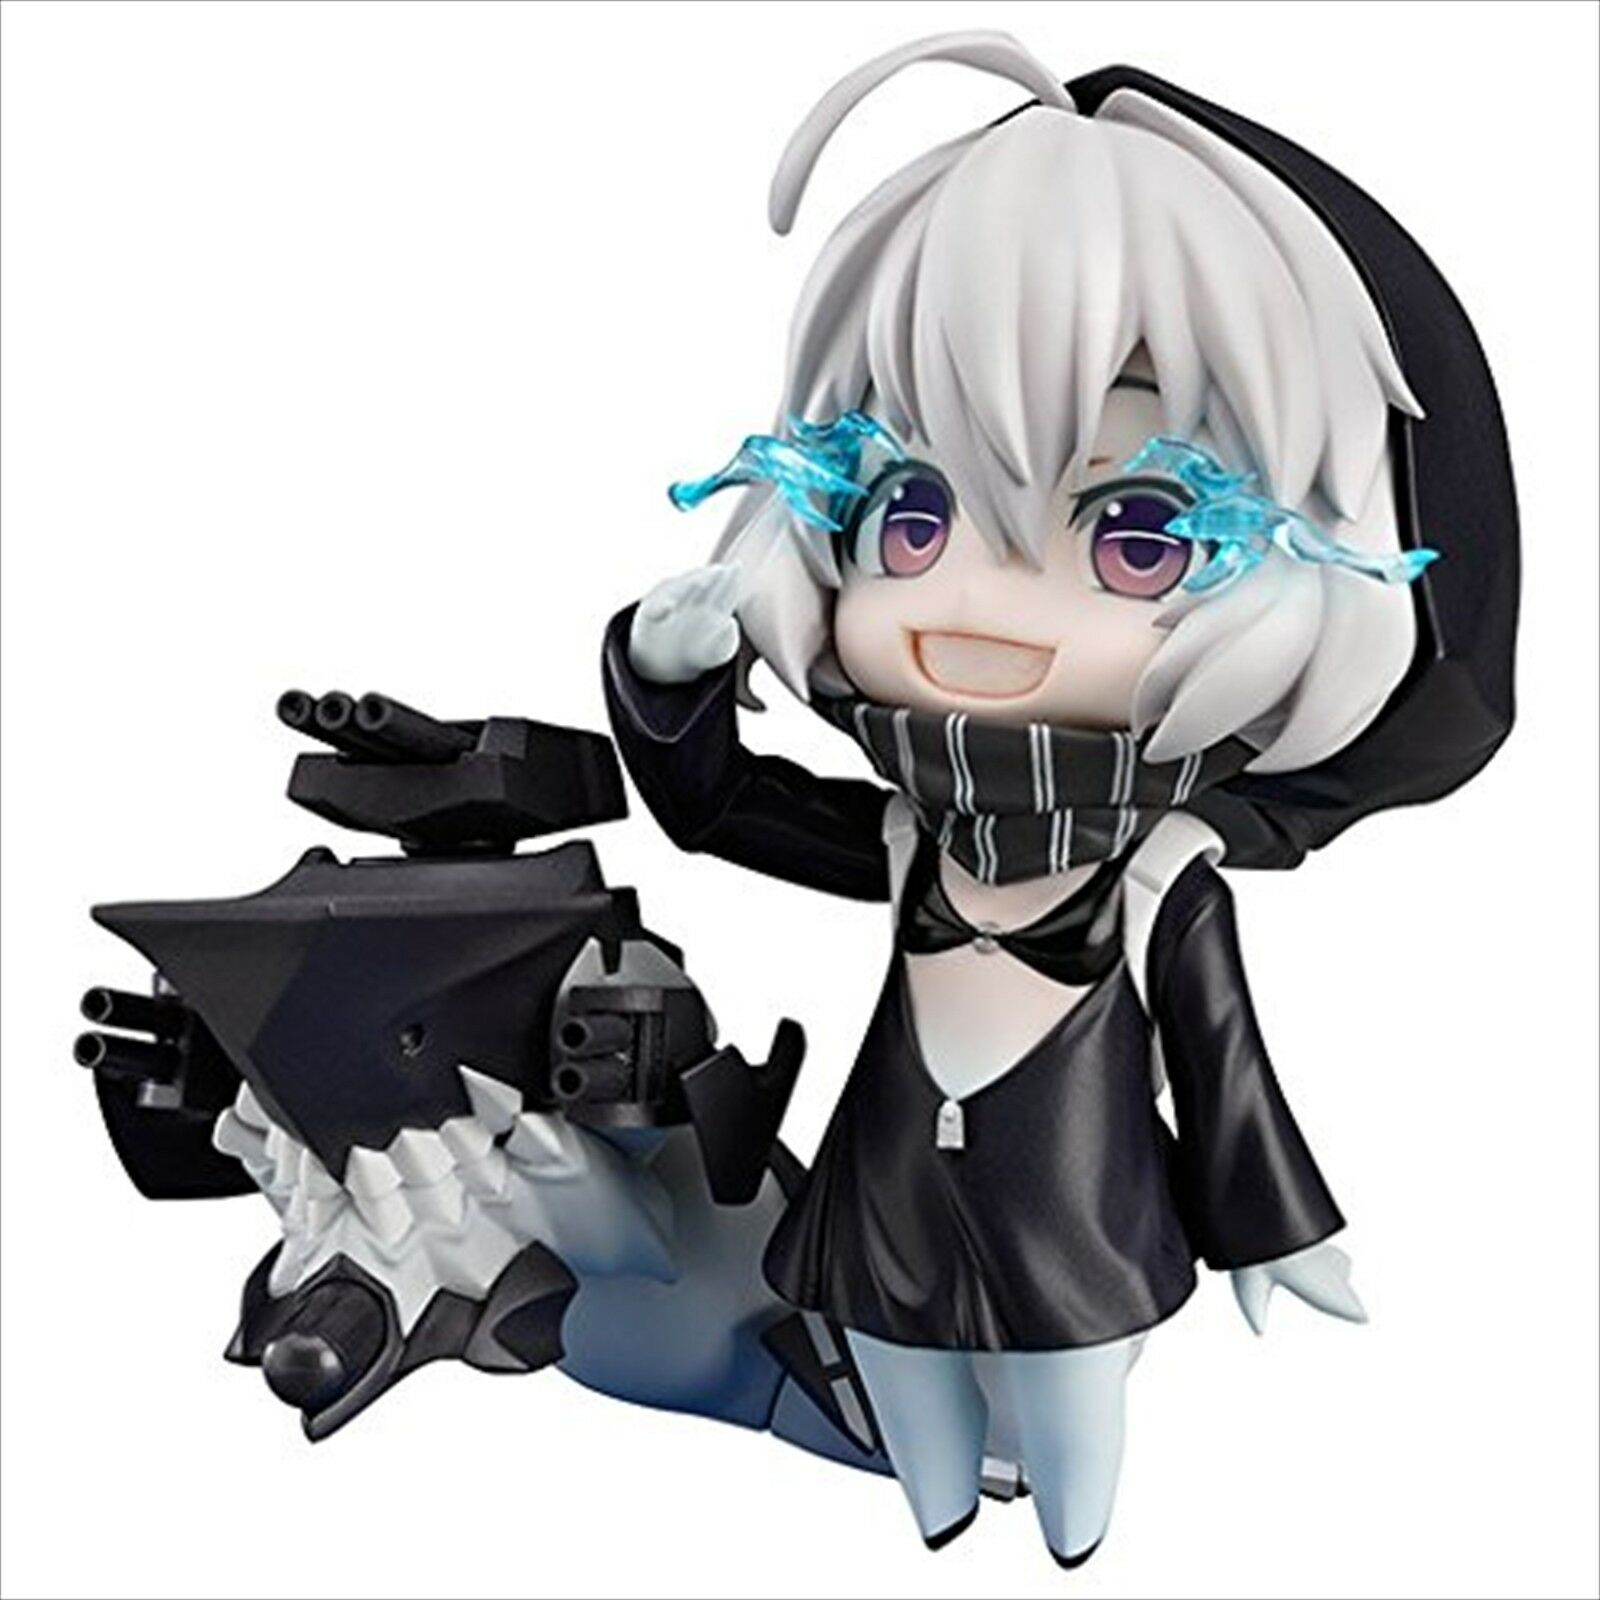 Kantai Collection Kancolle Battleship Re-Class Nendoroid Action Figure